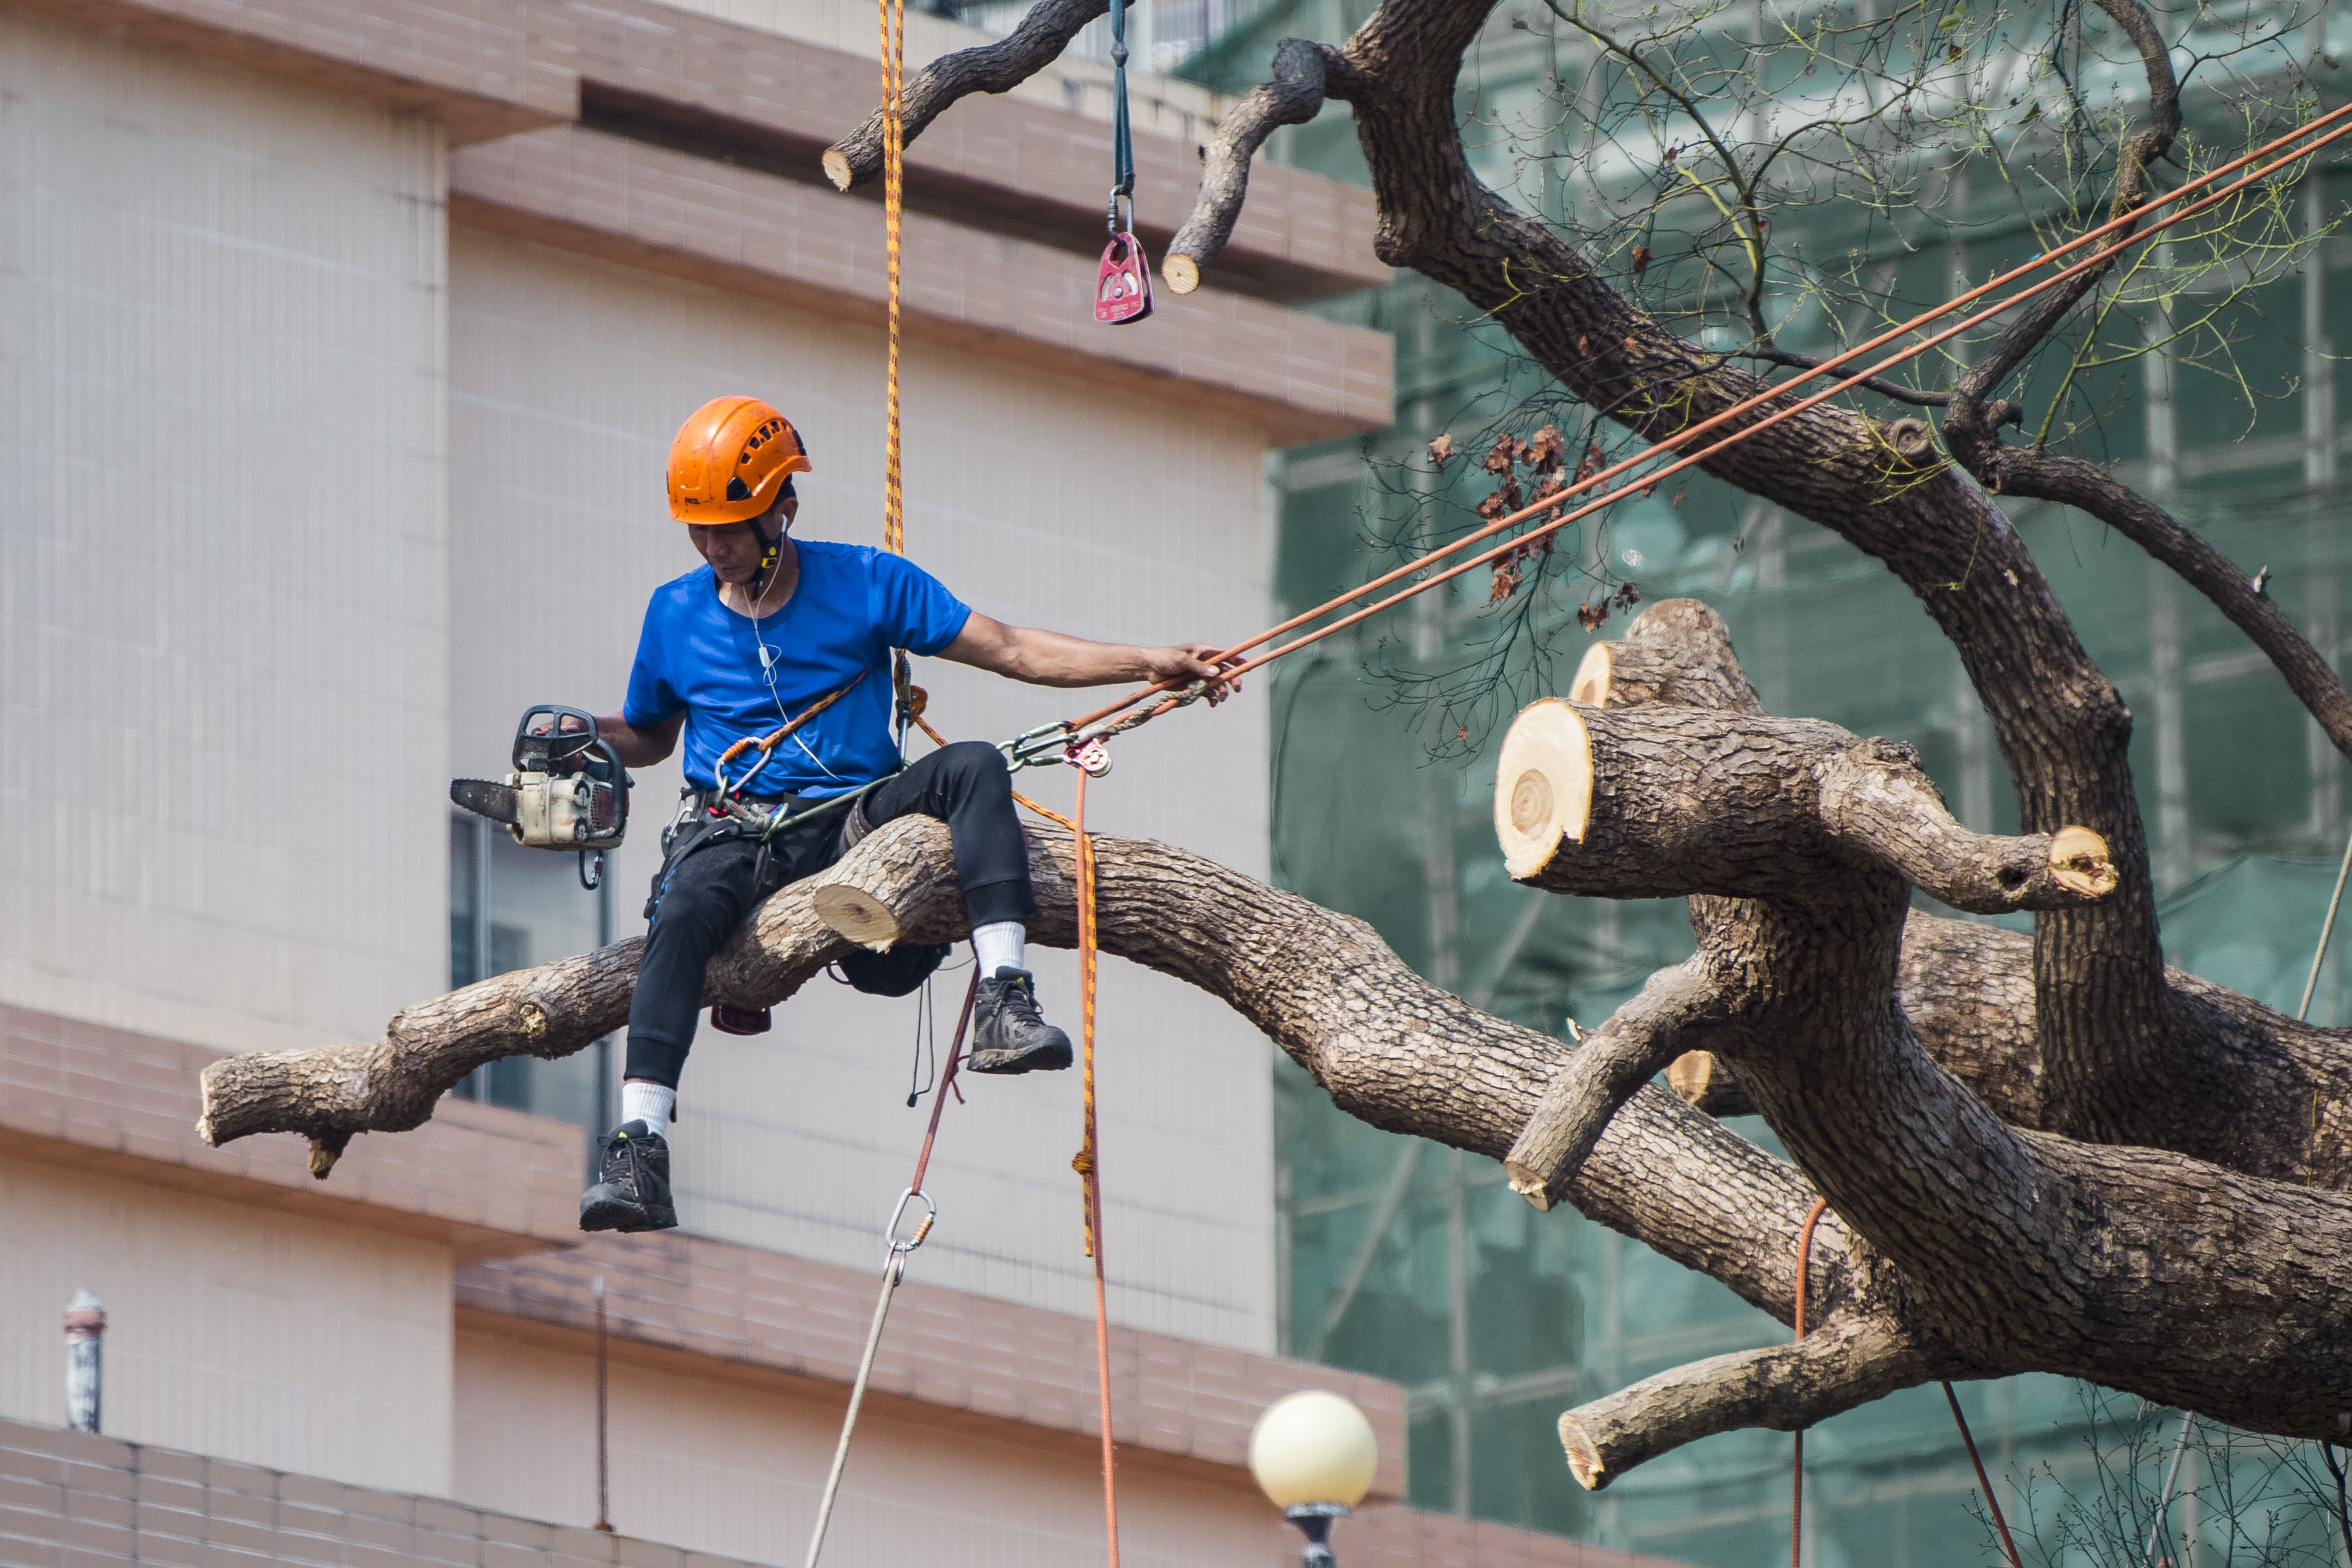 Man in Blue Shirt Siting on Tree Branch Wearing Safety Harness Holding Ropes on Left Hand and Chainsaw in Right Hand